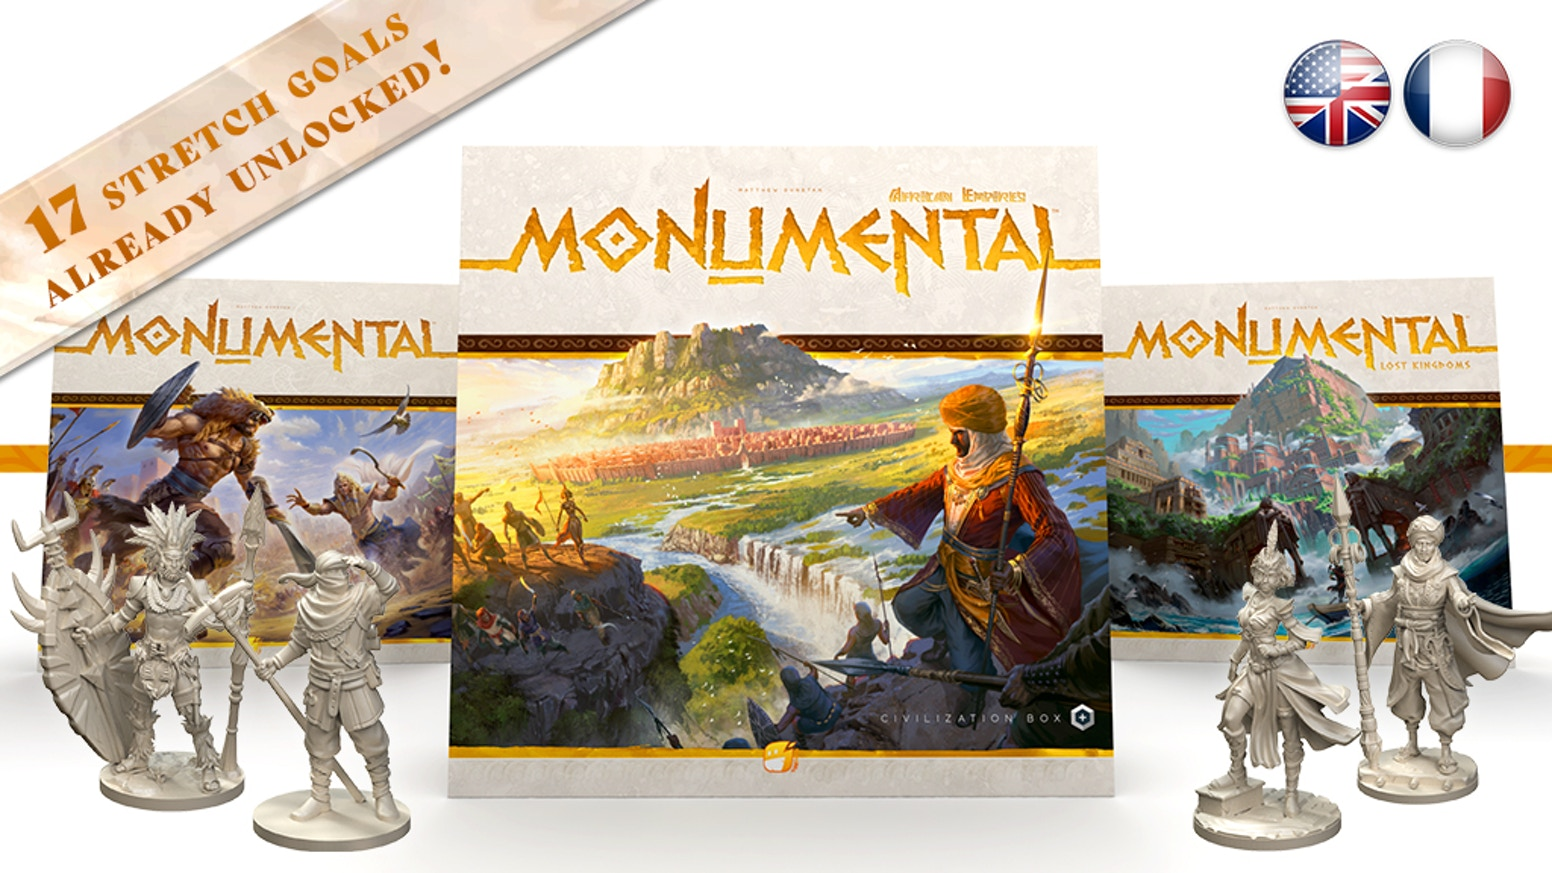 Get the reprint of the hit civilization game MONUMENTAL (+1st expansion) and discover AFRICAN EMPIRES, its new thrilling expansion.